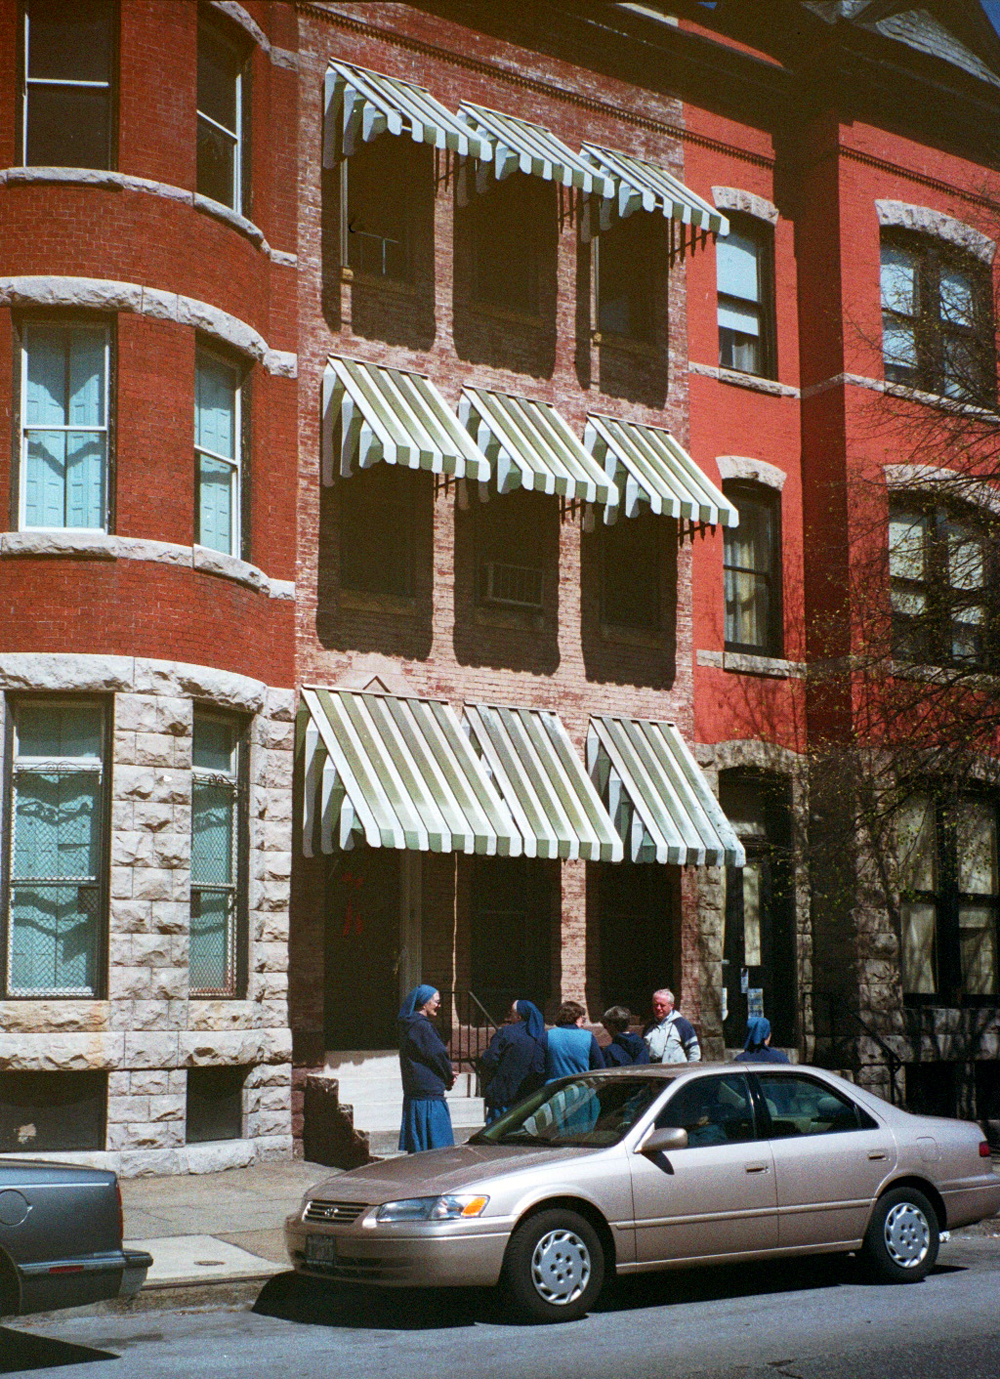 2009 McCulloh Street, Baltimore. Photo taken in 1999.